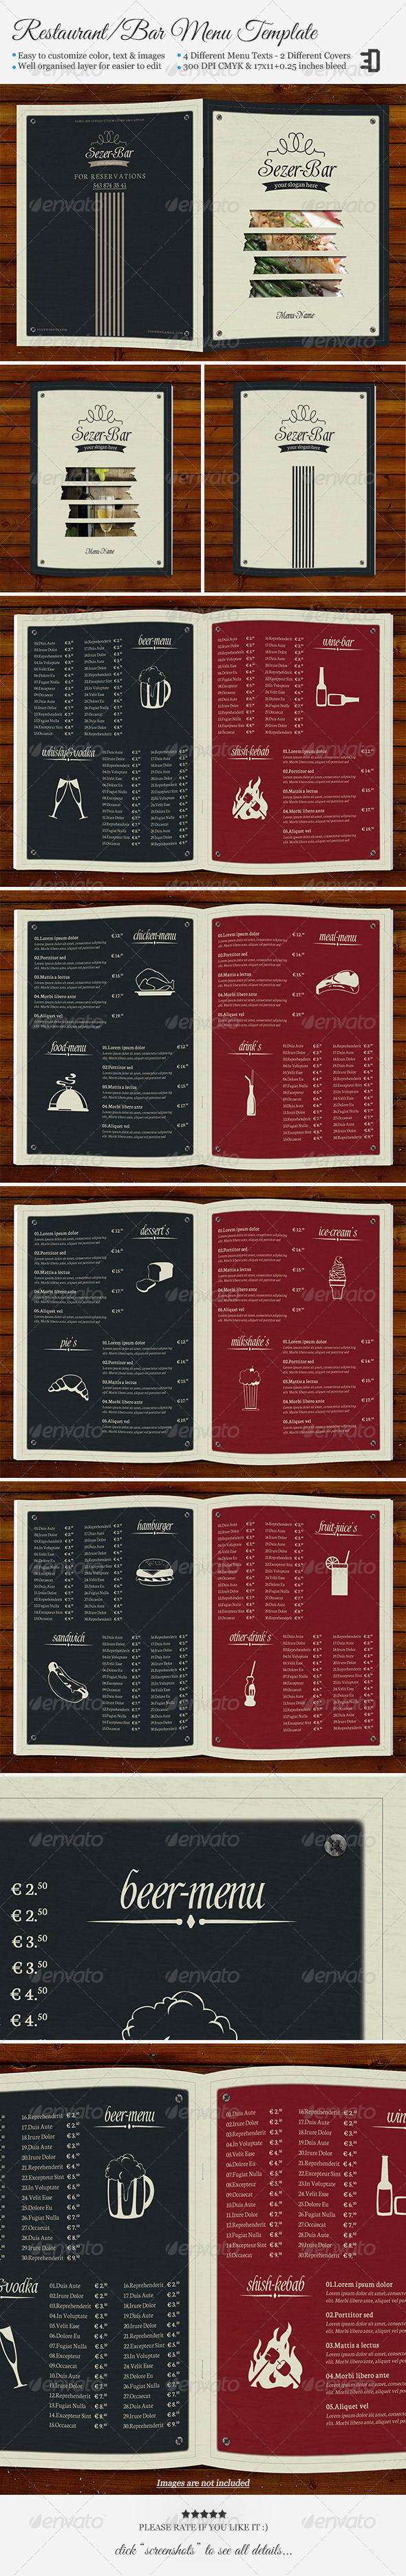 Restaurant/Bar Menu Template - Food Menus Print Templates